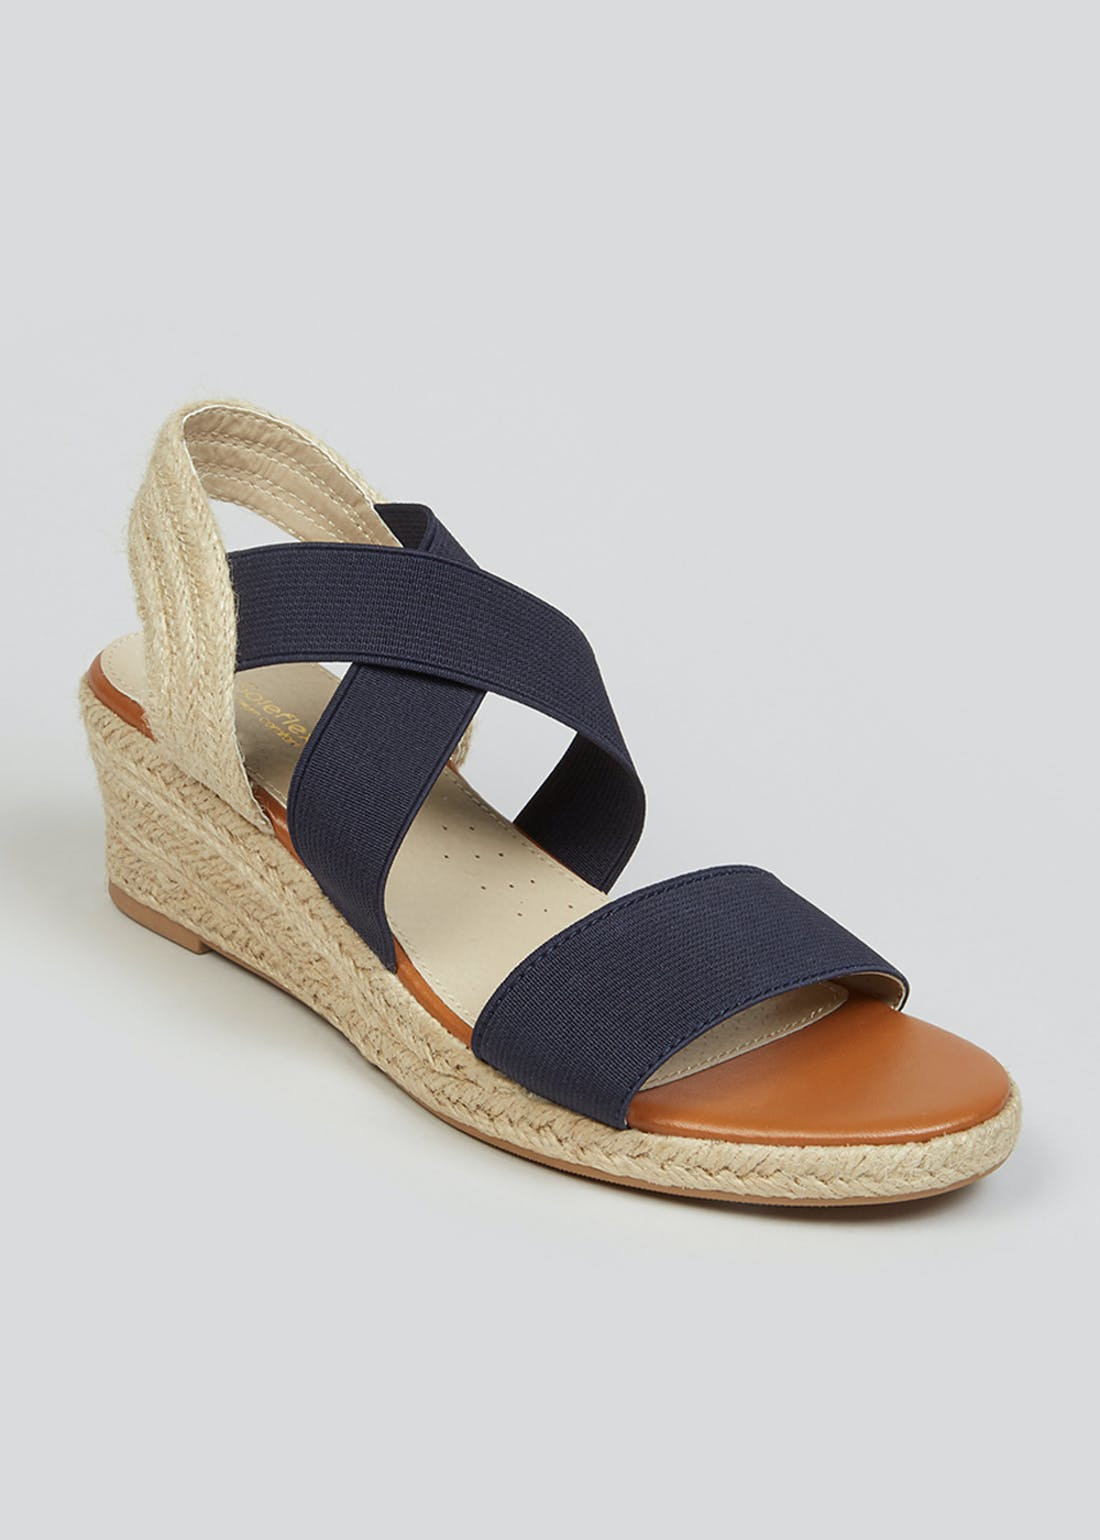 Soleflex Navy Wedge Espadrille Sandals